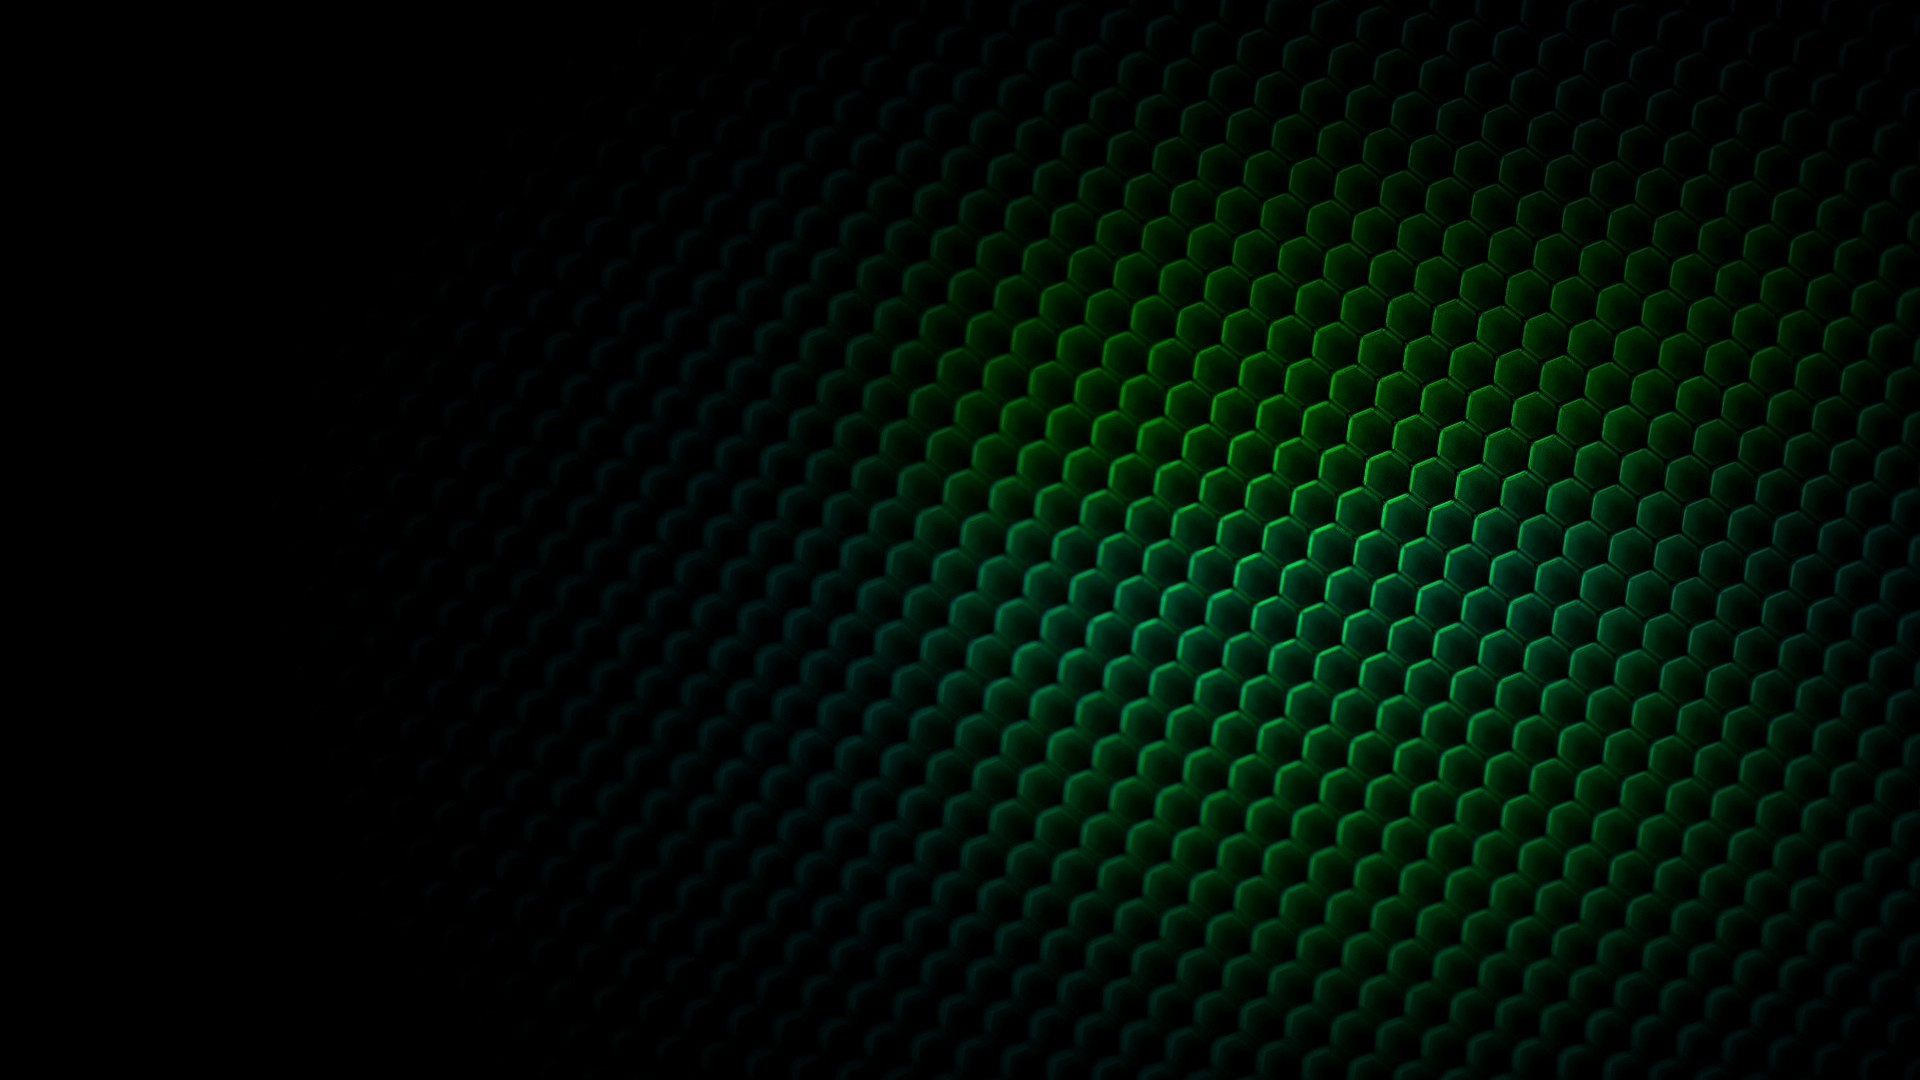 awesome-dark-green-wallpaper-41162-42145-hd-wallpapers.